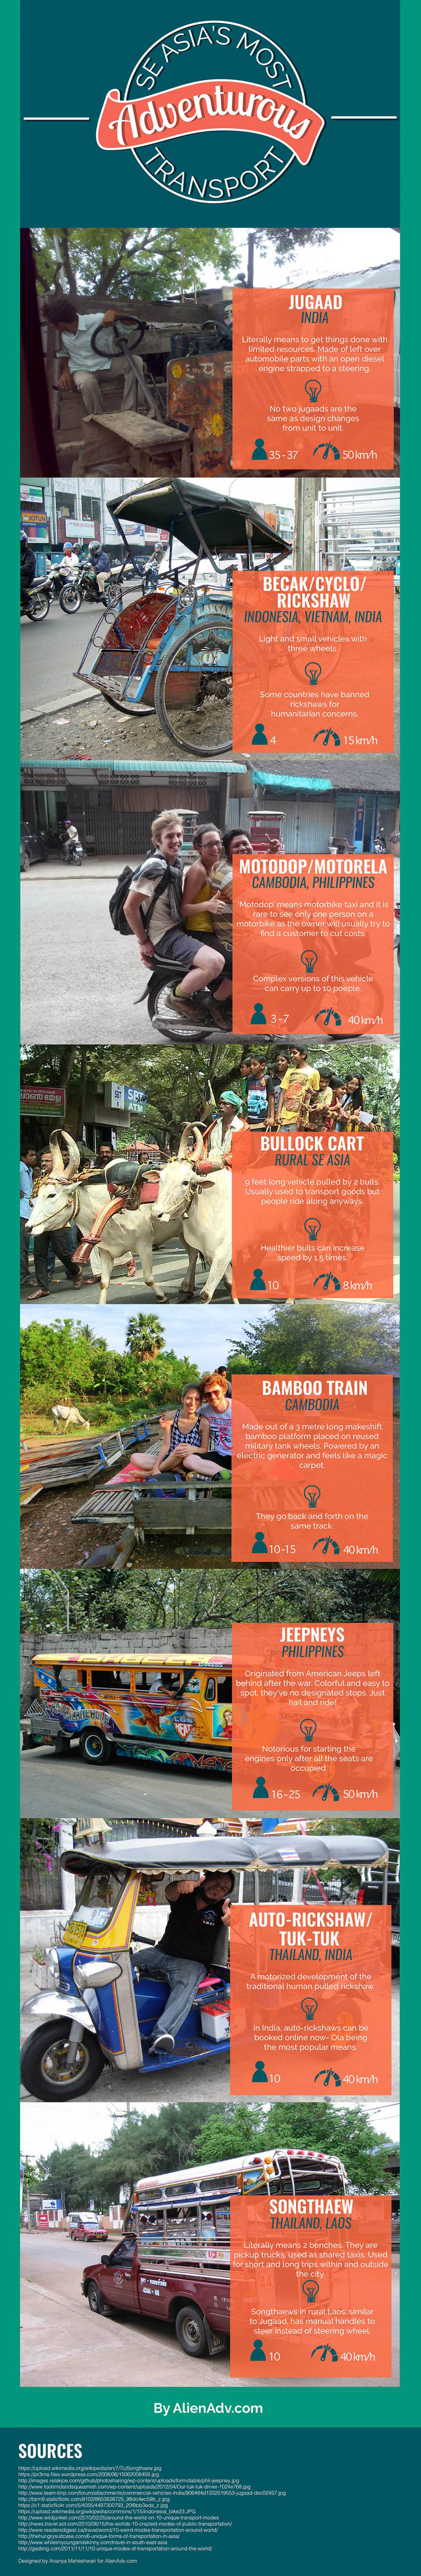 Weird Ways to Travel! Transport in South East Asia Infographic